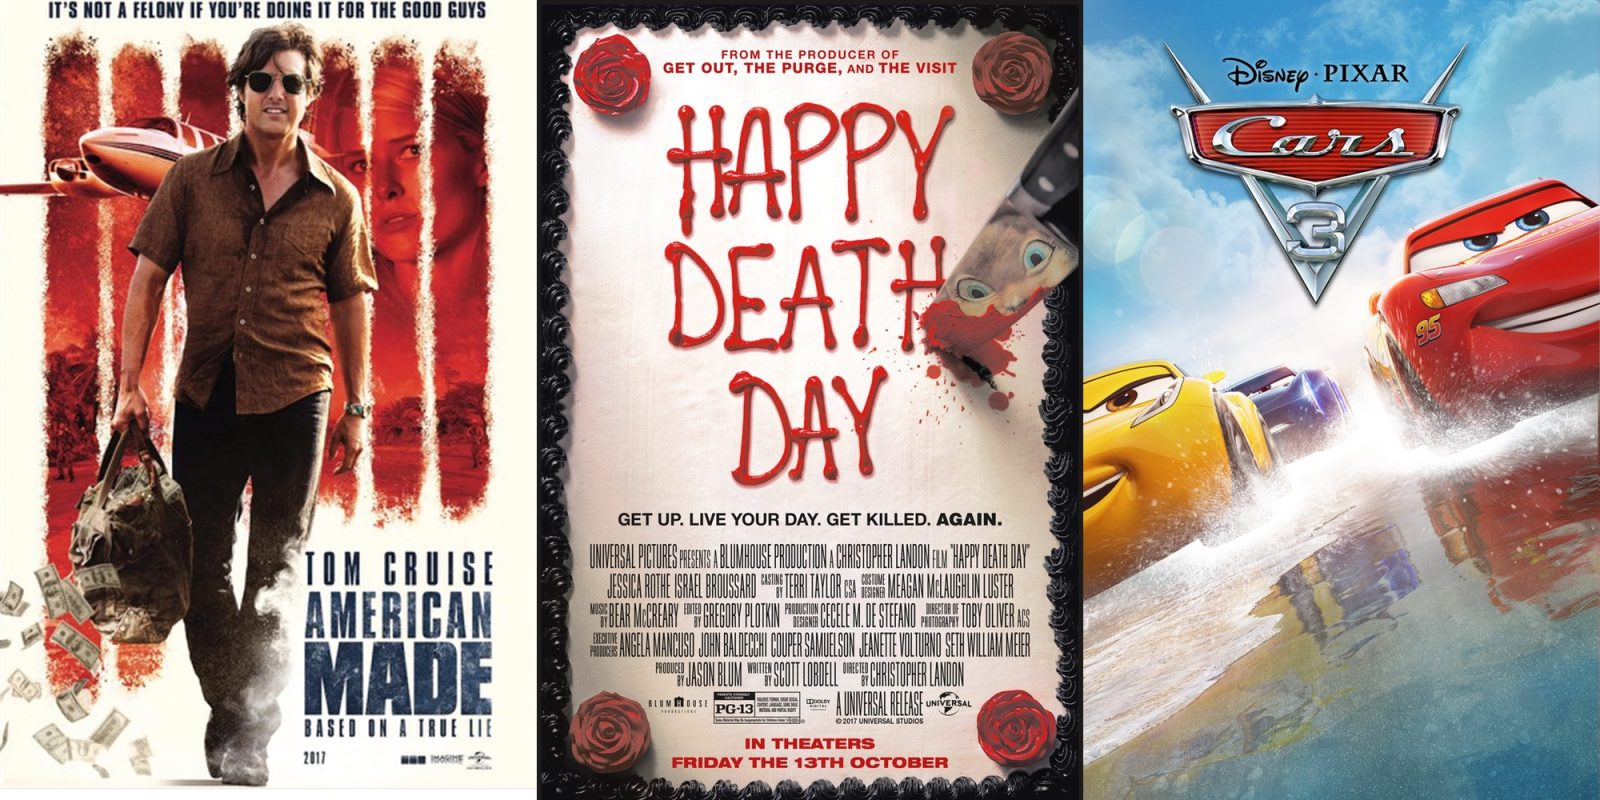 Own these Digital HD Movies for $8: American Made, Happy